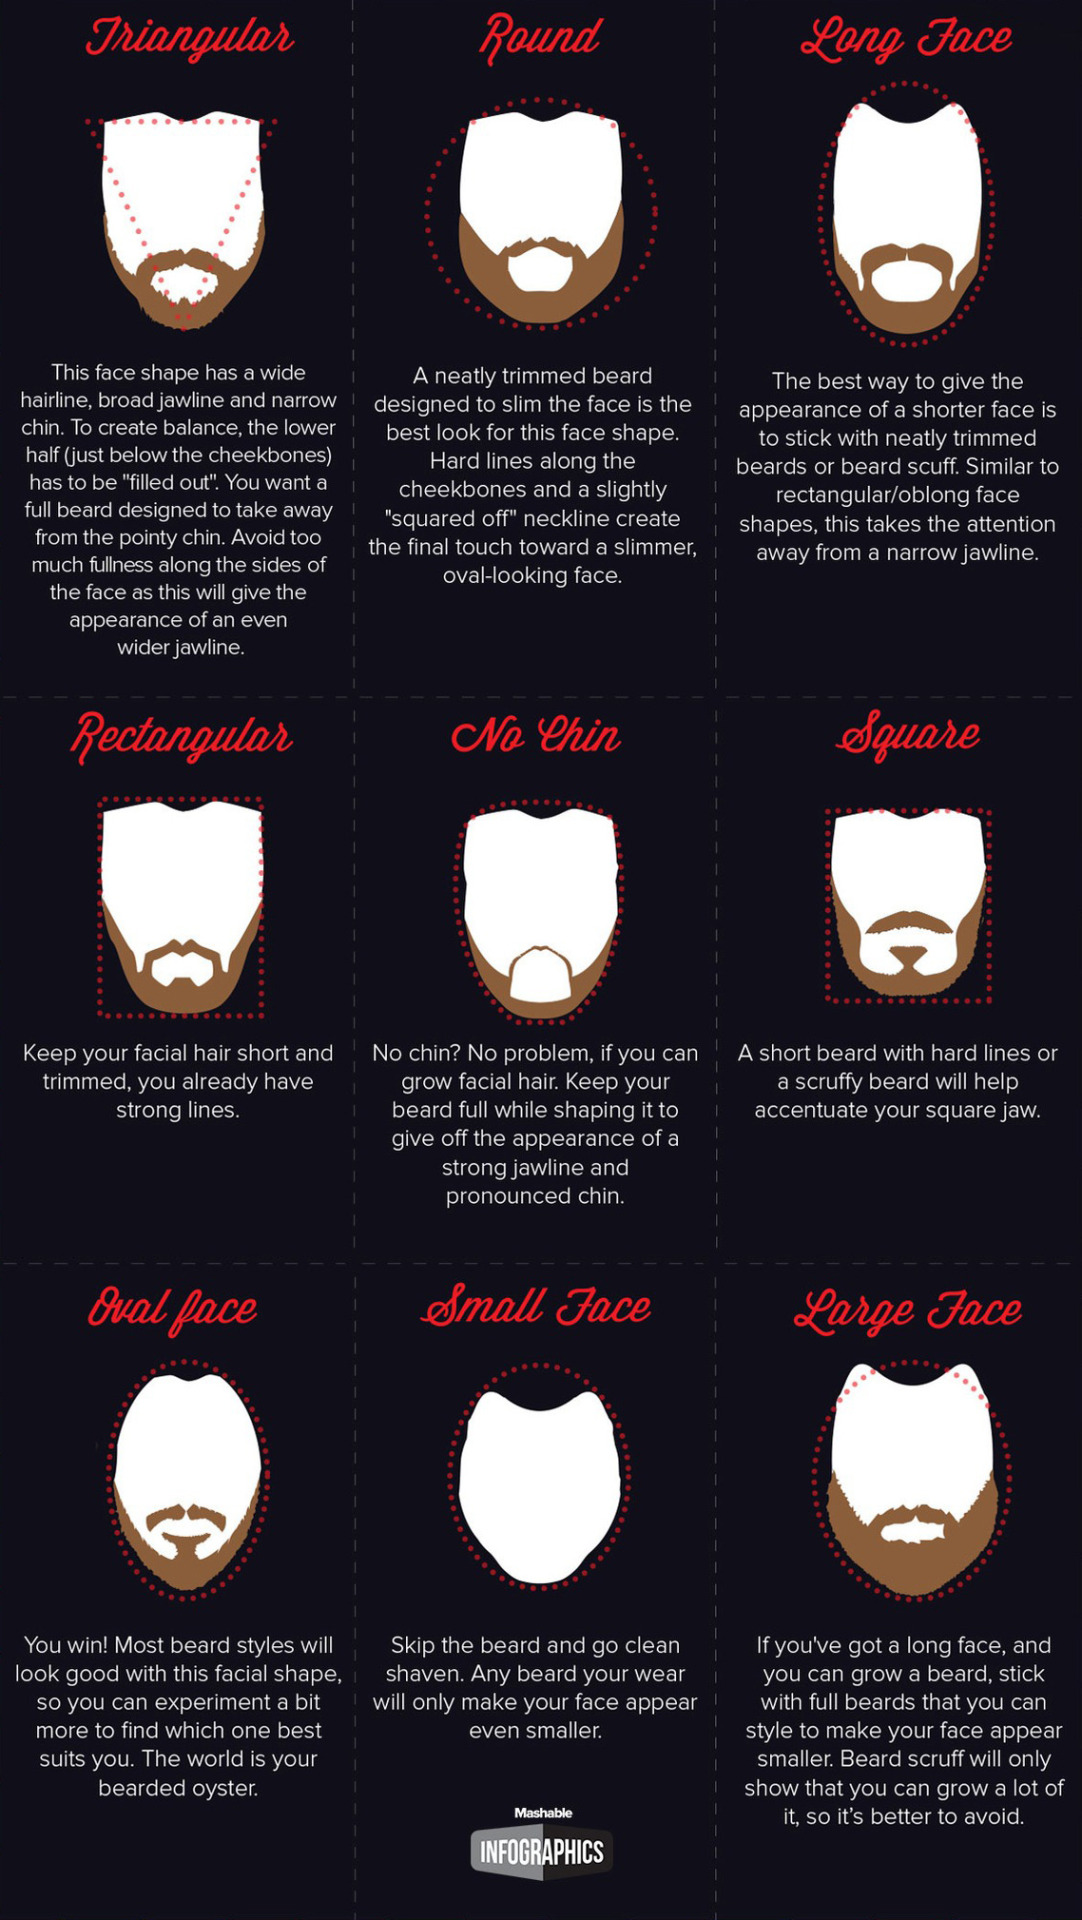 choosing the right beard type for your face shape